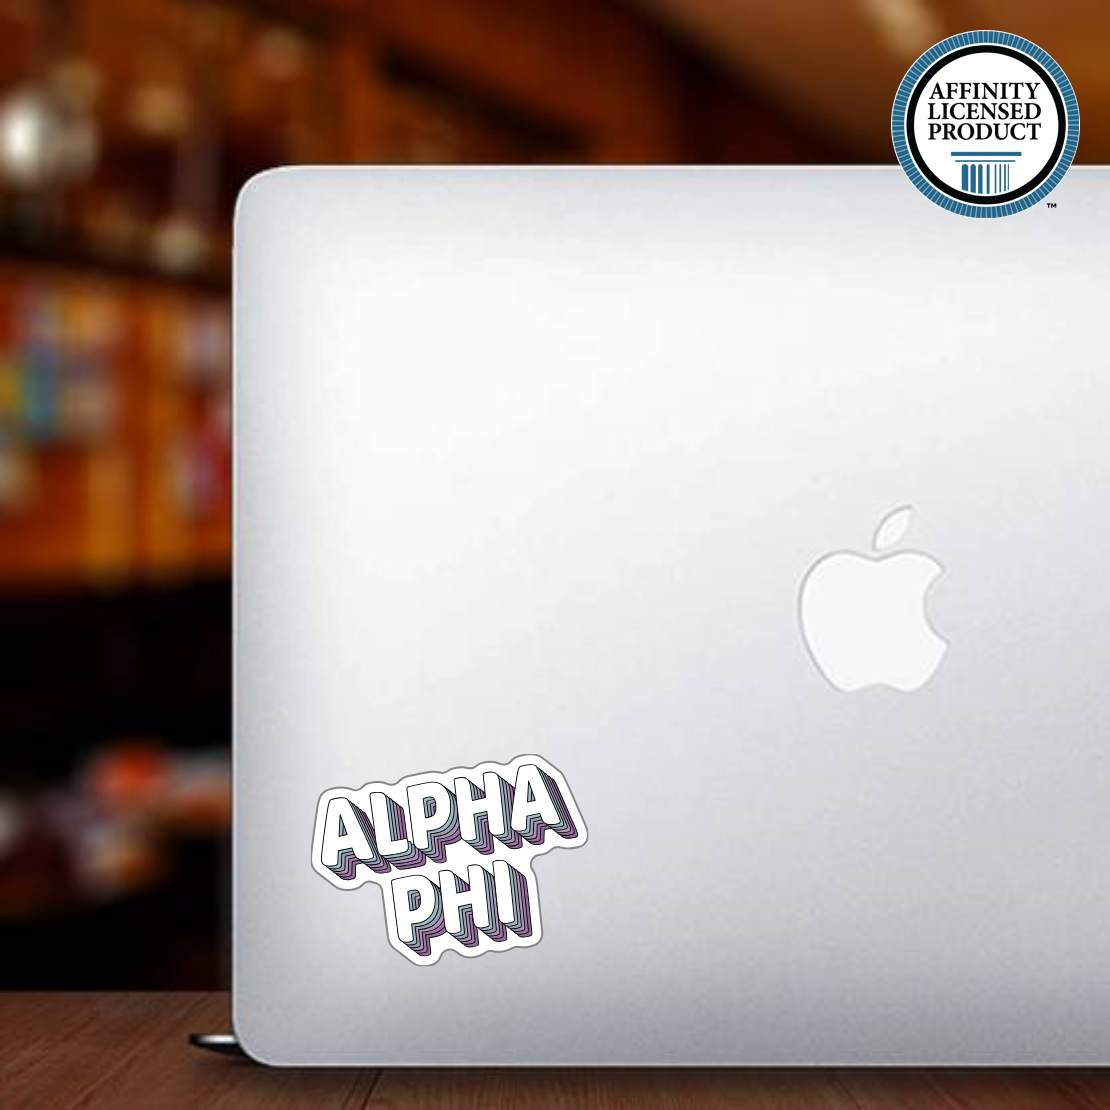 Amazon Com Sigma Phi Epsilon Fraternity Usa Letter Sticker Decal Greek 2 Inches Tall For Window Laptop Computer Car Sig Ep Toys Games [ 531 x 1500 Pixel ]